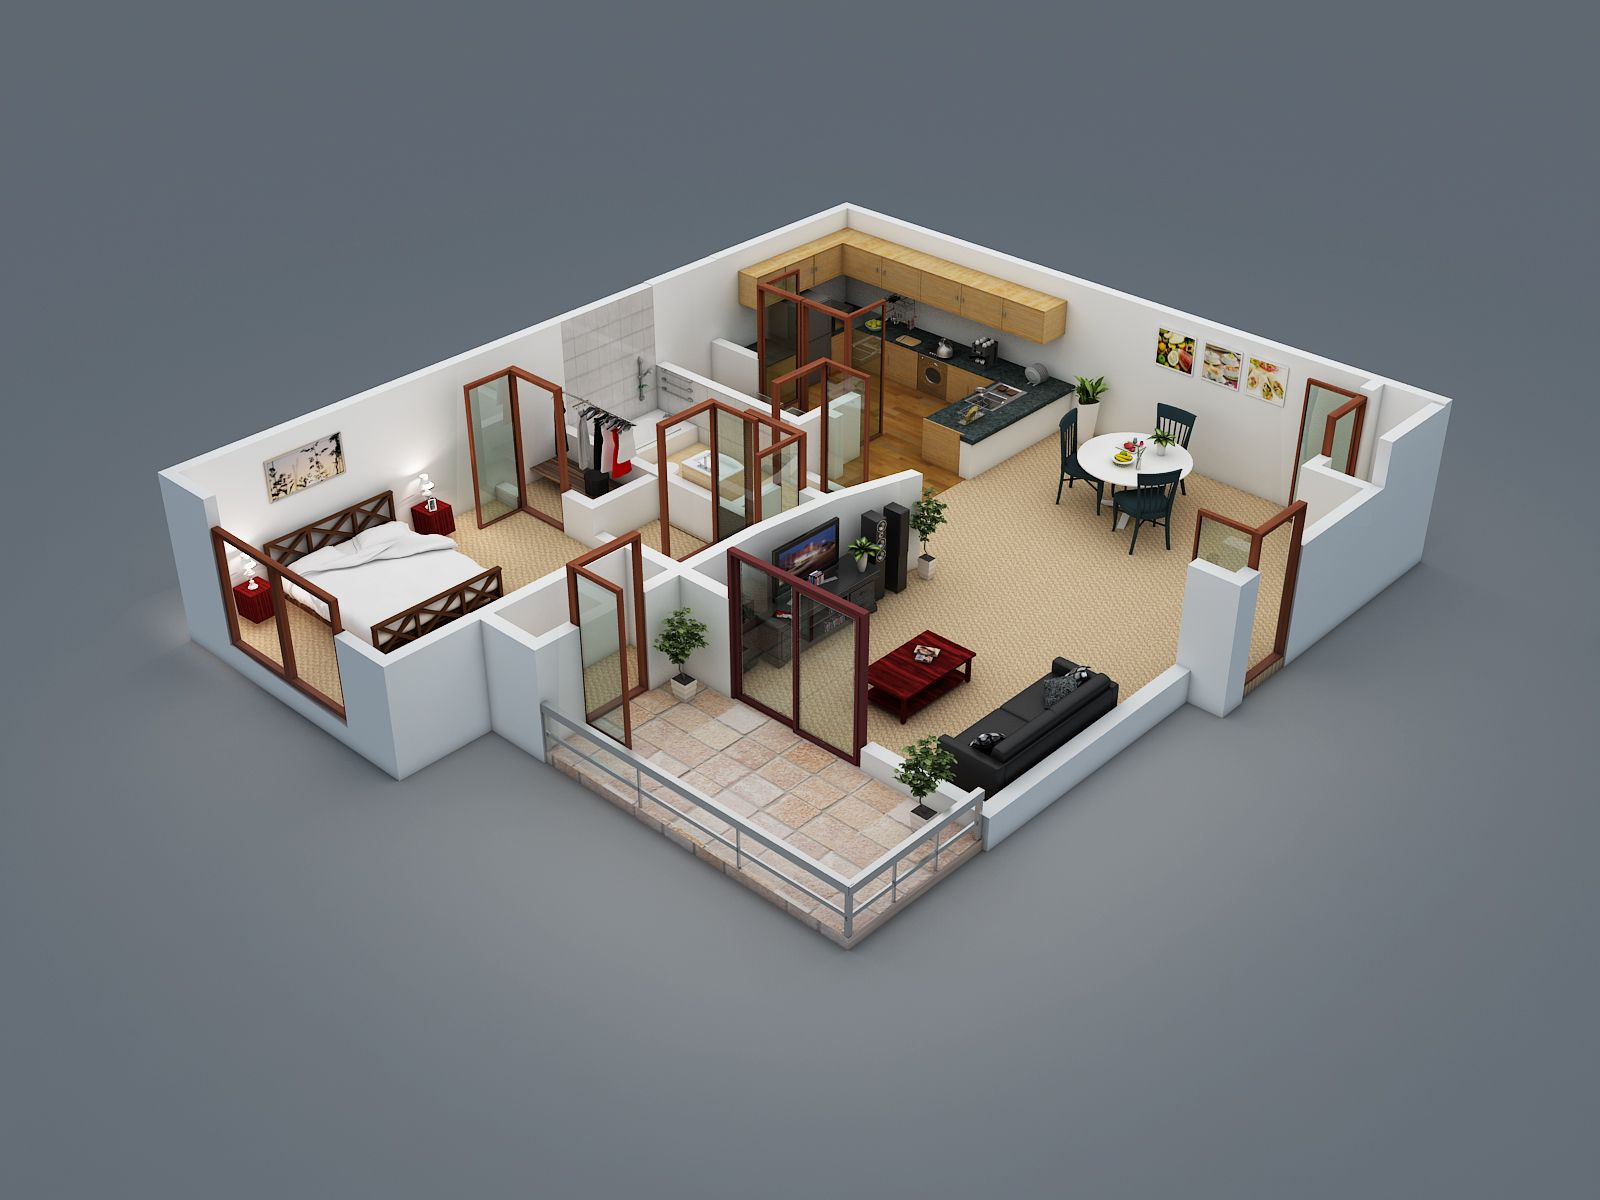 3d floor plans wazo communications apa pinterest for One floor house design plans 3d